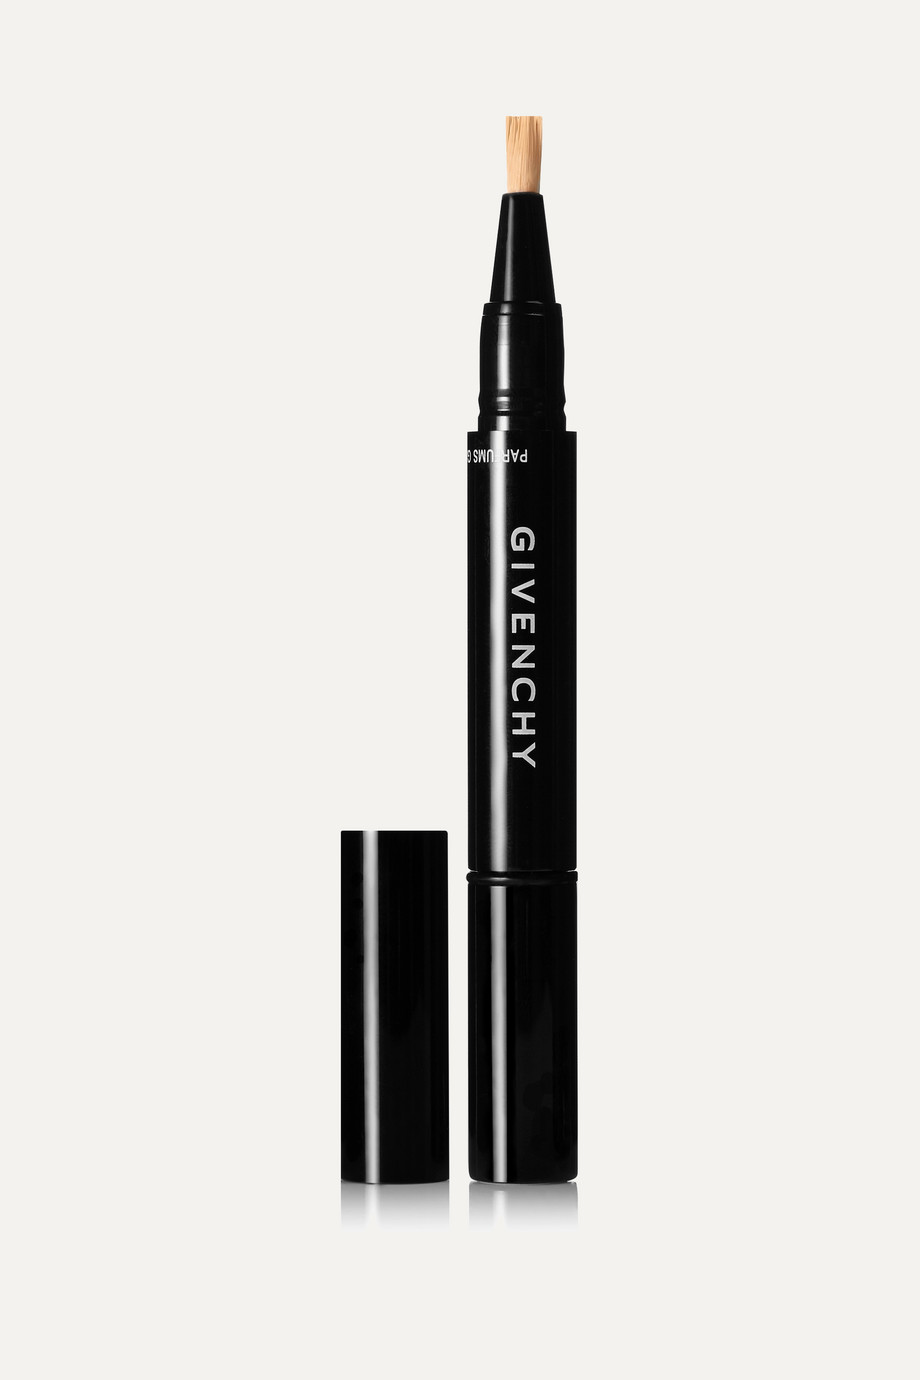 Givenchy Beauty Mister Instant Corrective Pen - Light Beige 110